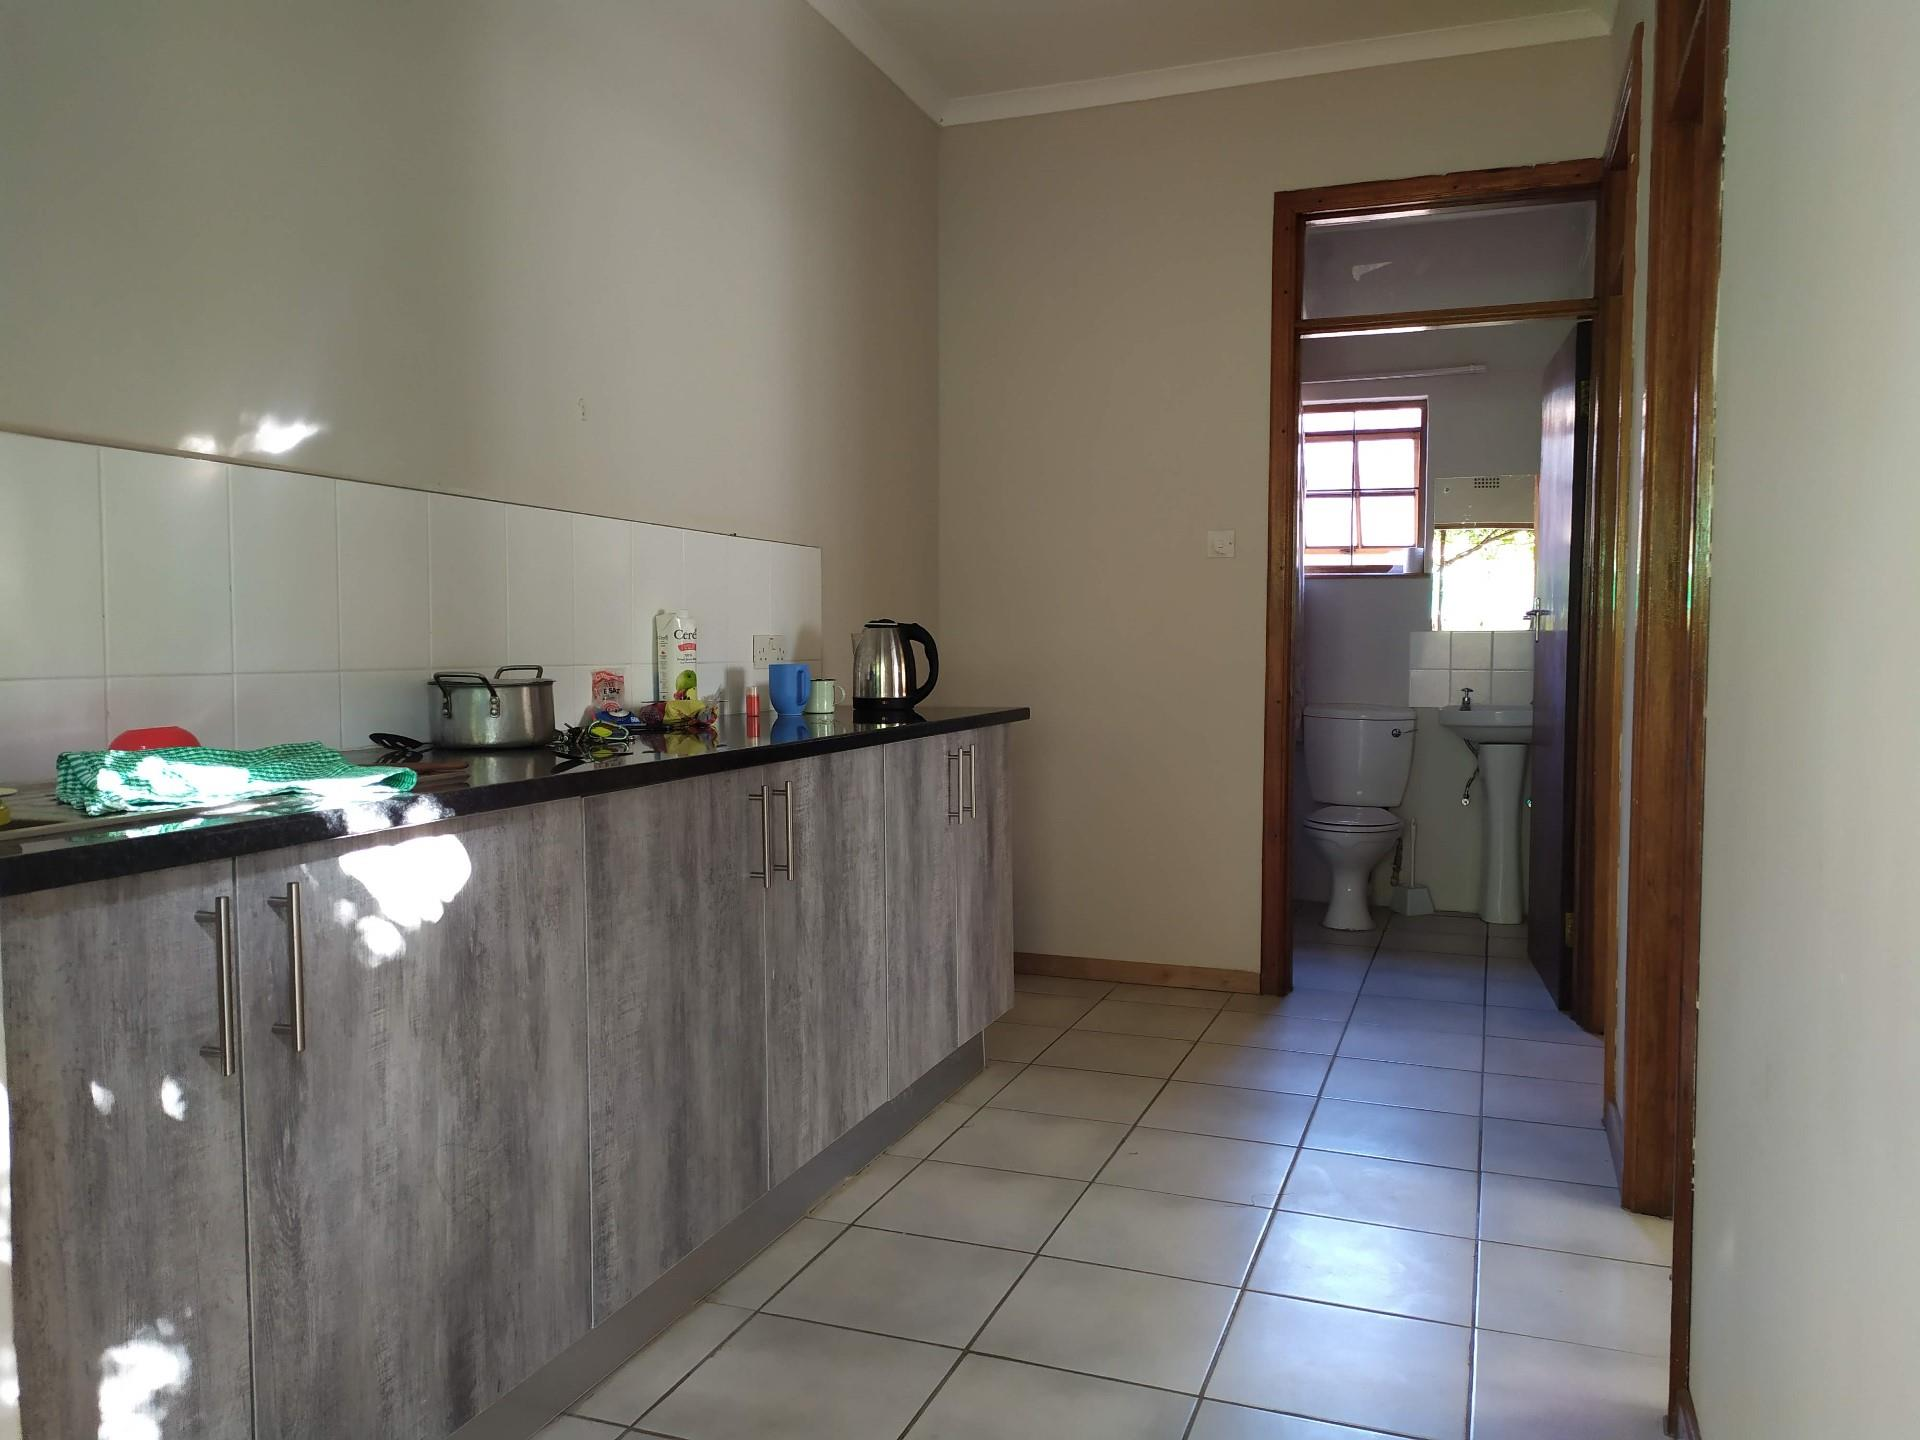 4 Bedroom House For Sale in Phakalane